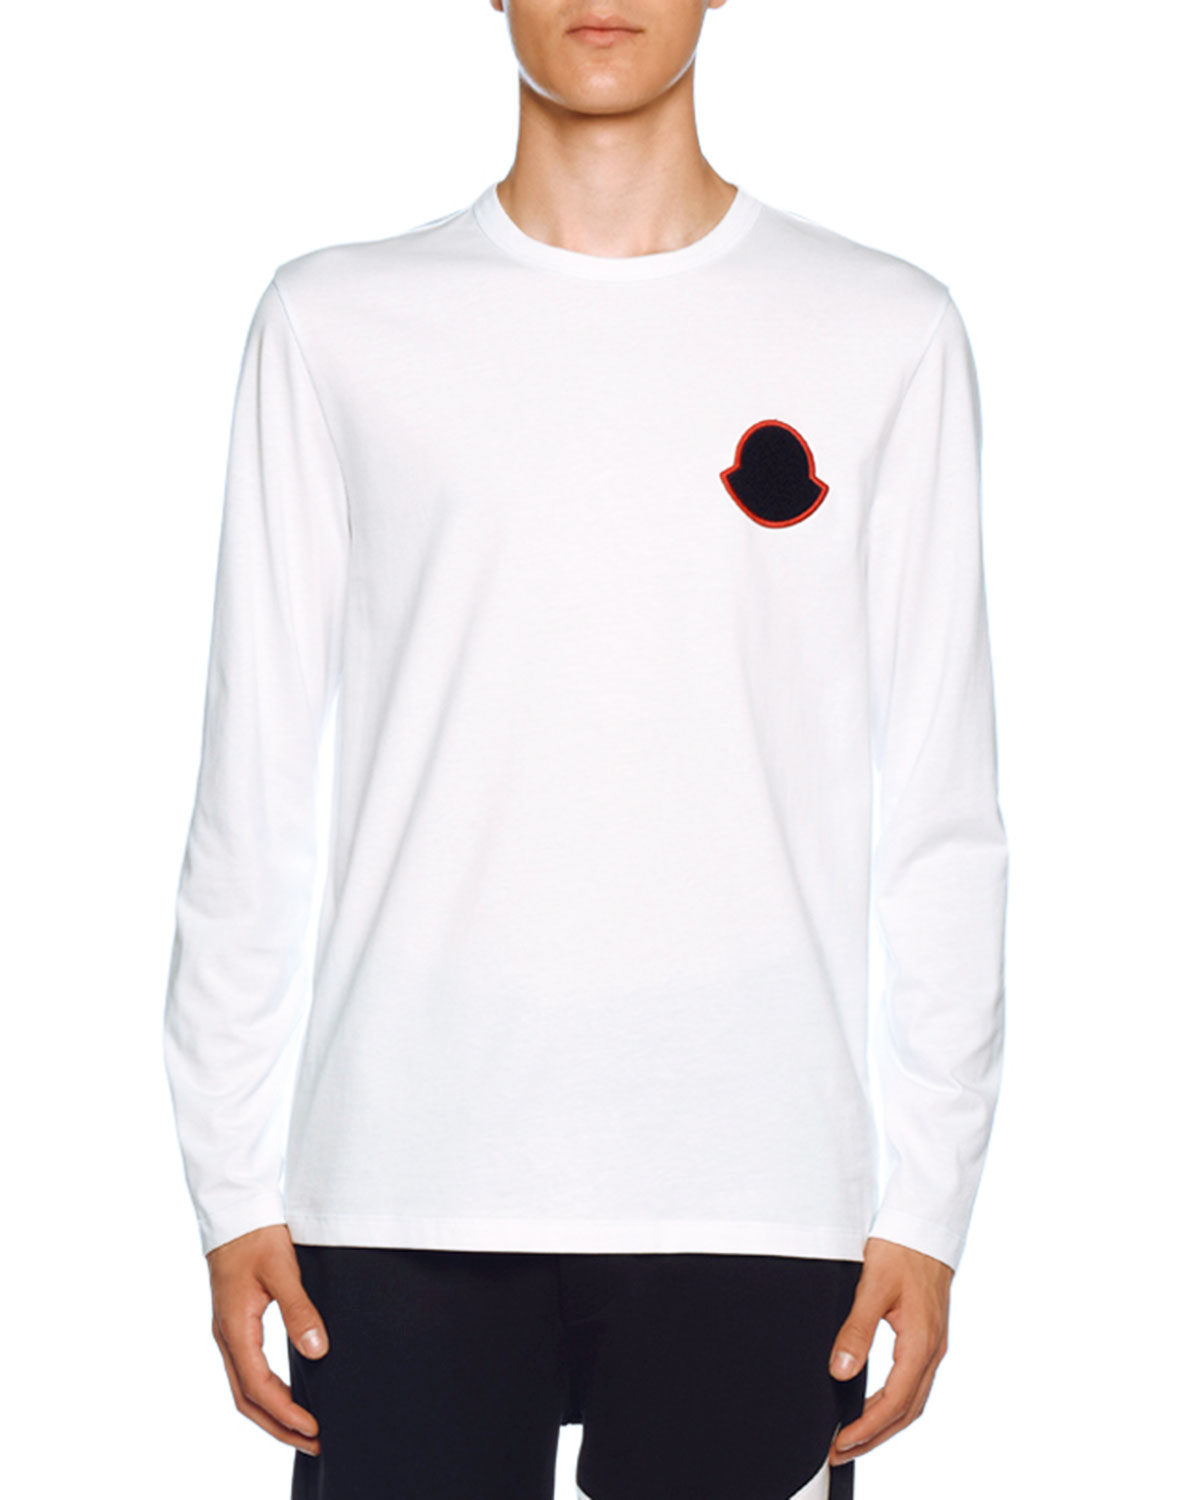 Men's Long Sleeve Crewneck T Shirt by Moncler